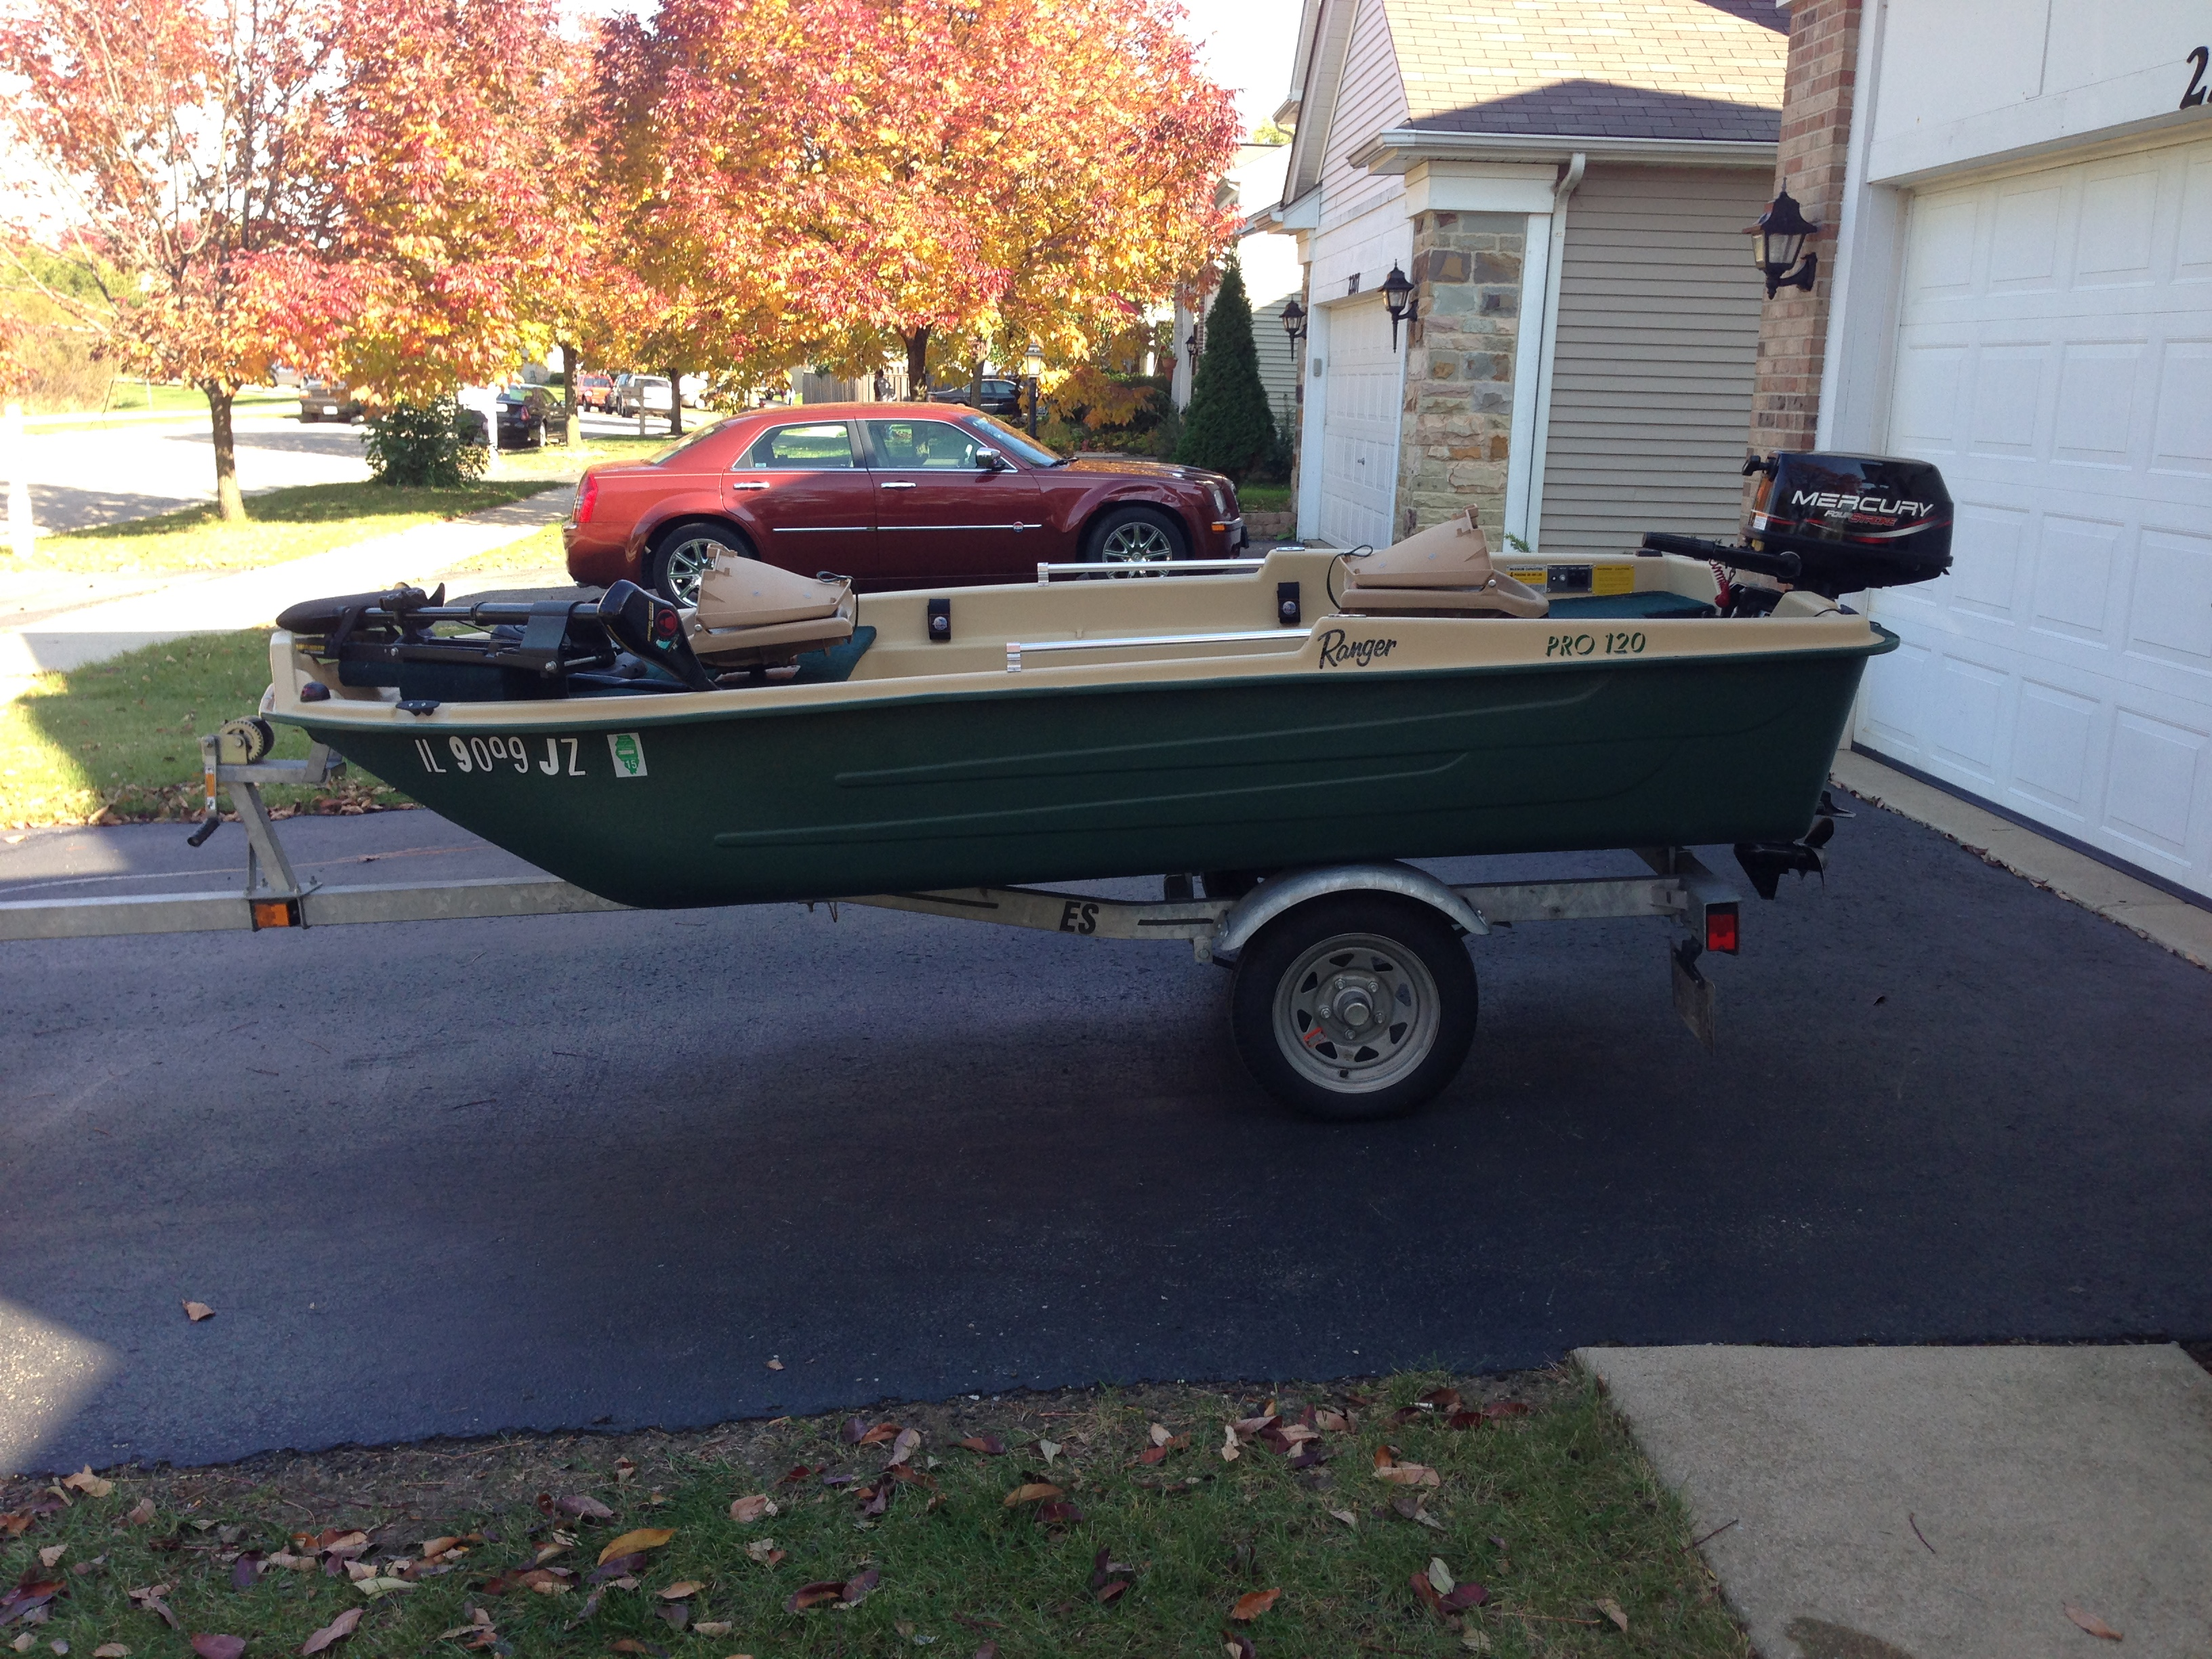 Boat for sale | Bent Rods Bass Club